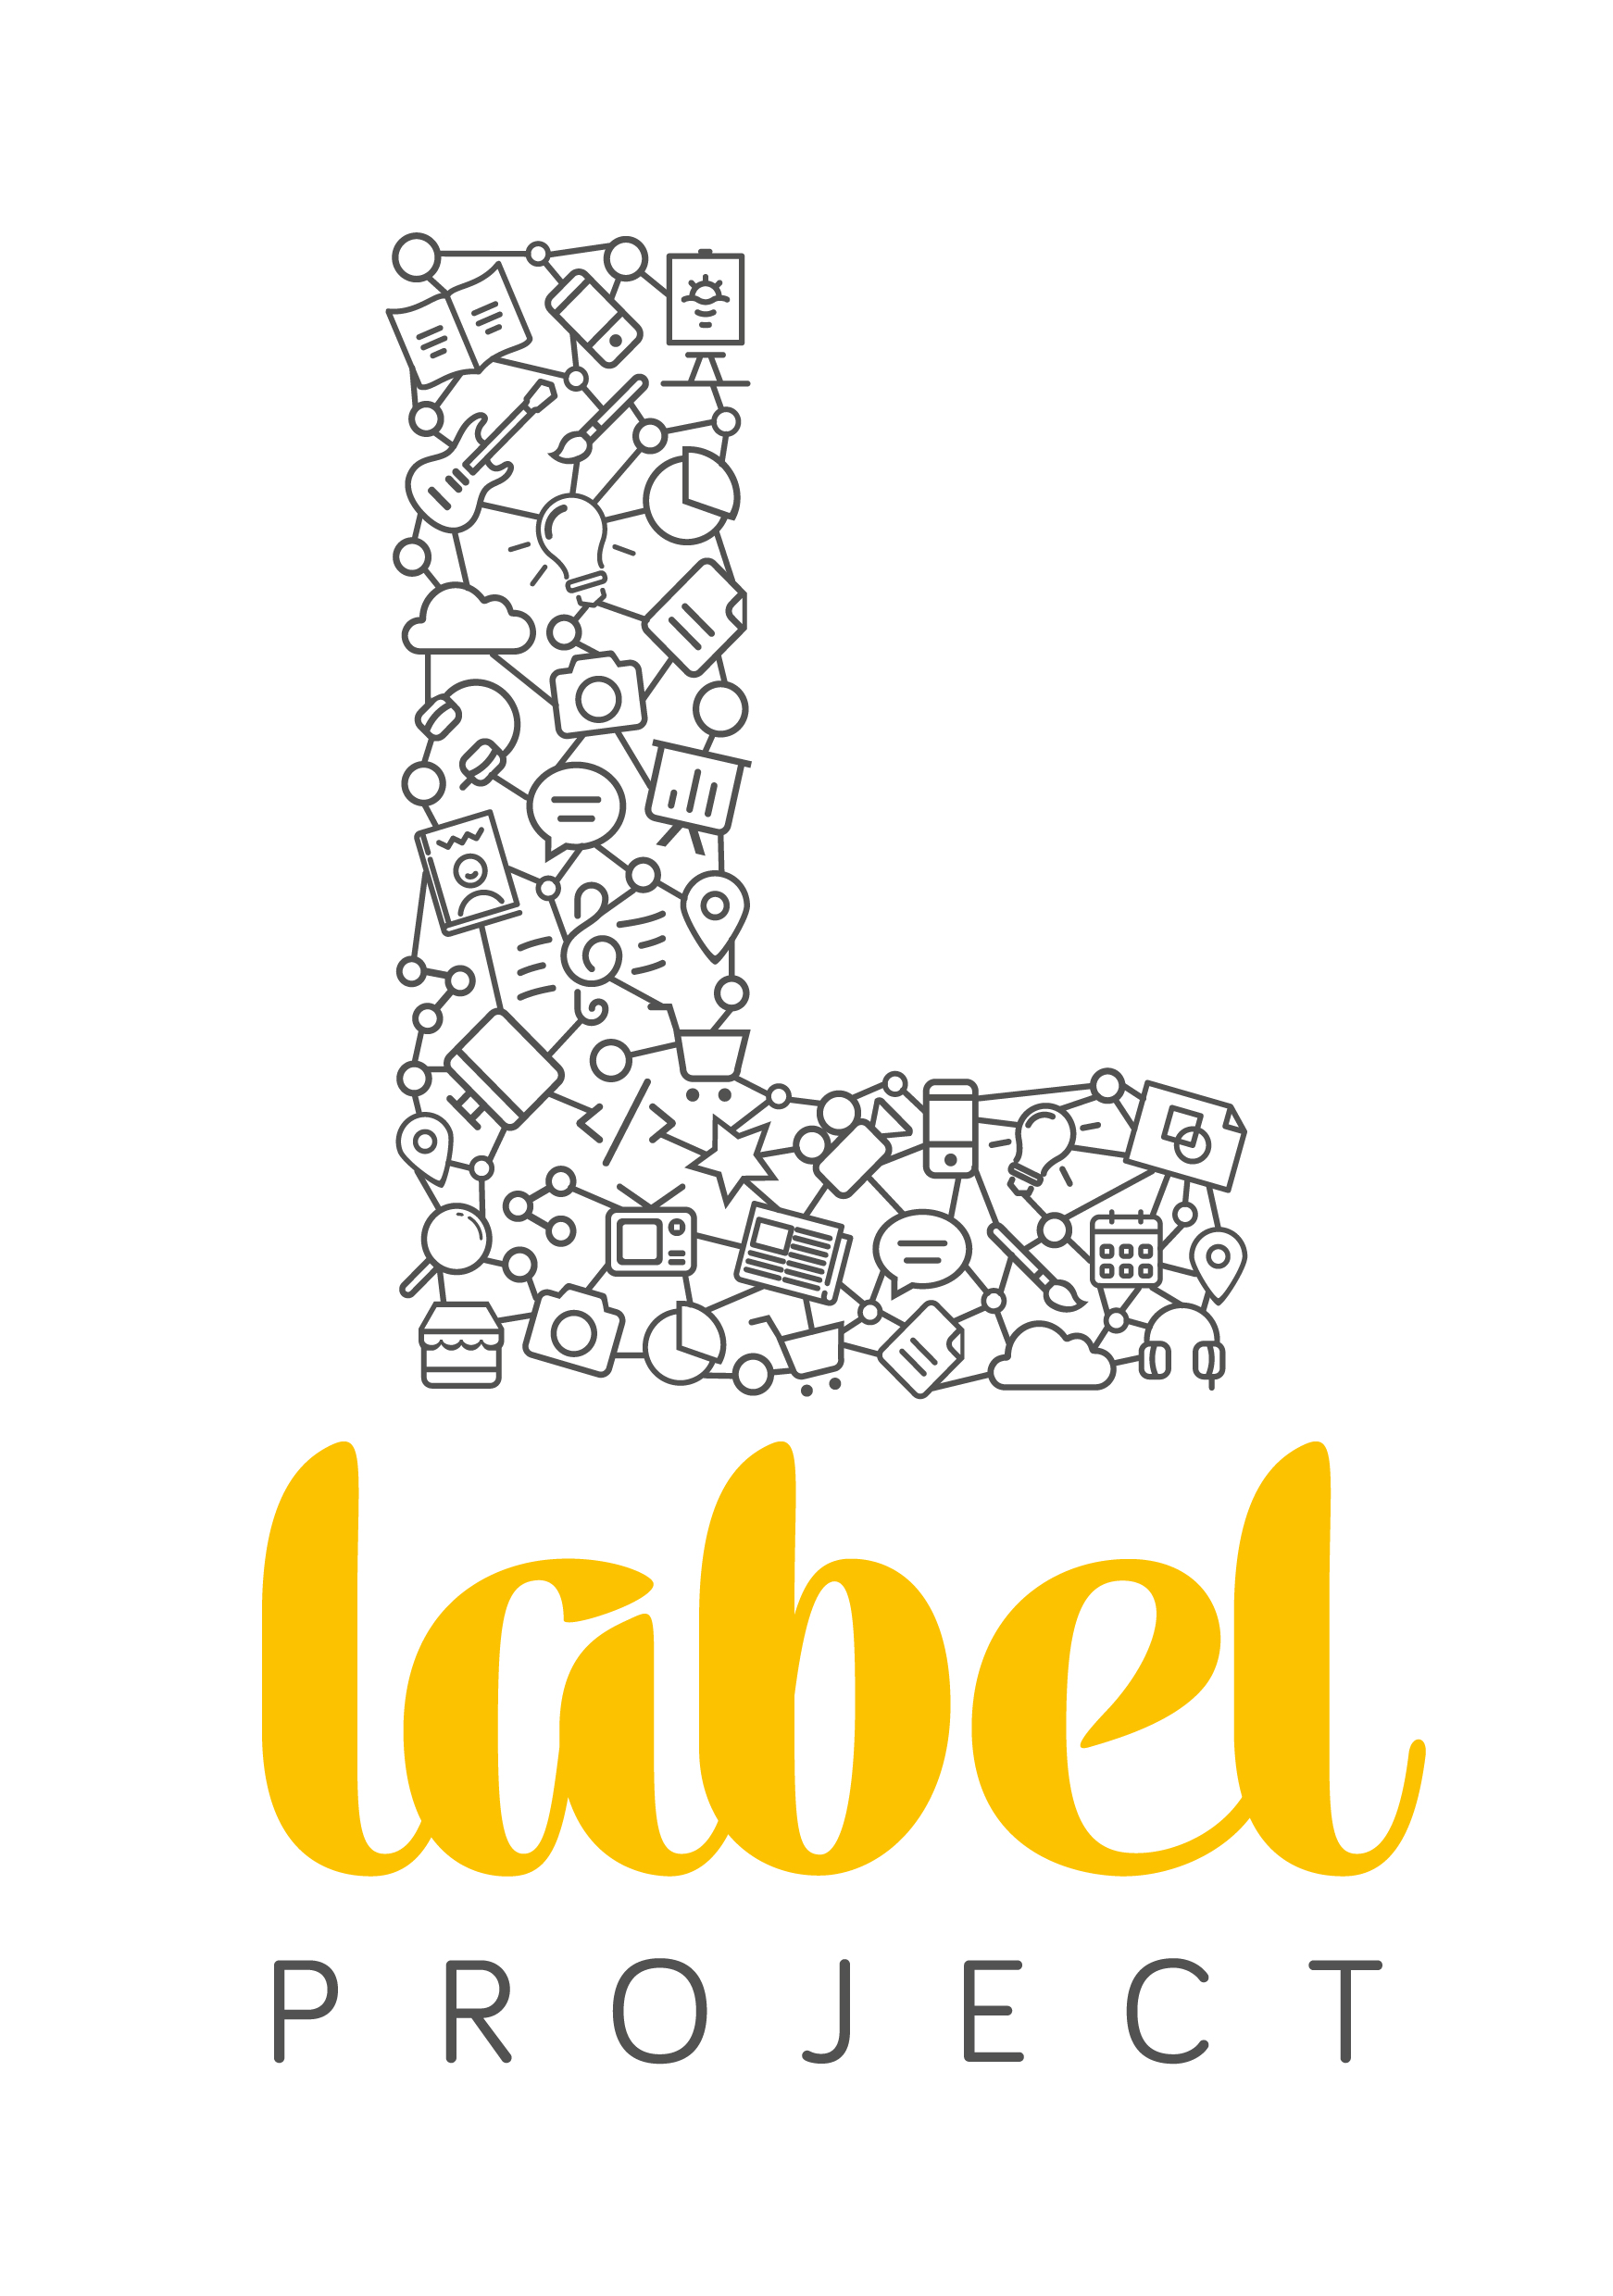 logo_label_project-01